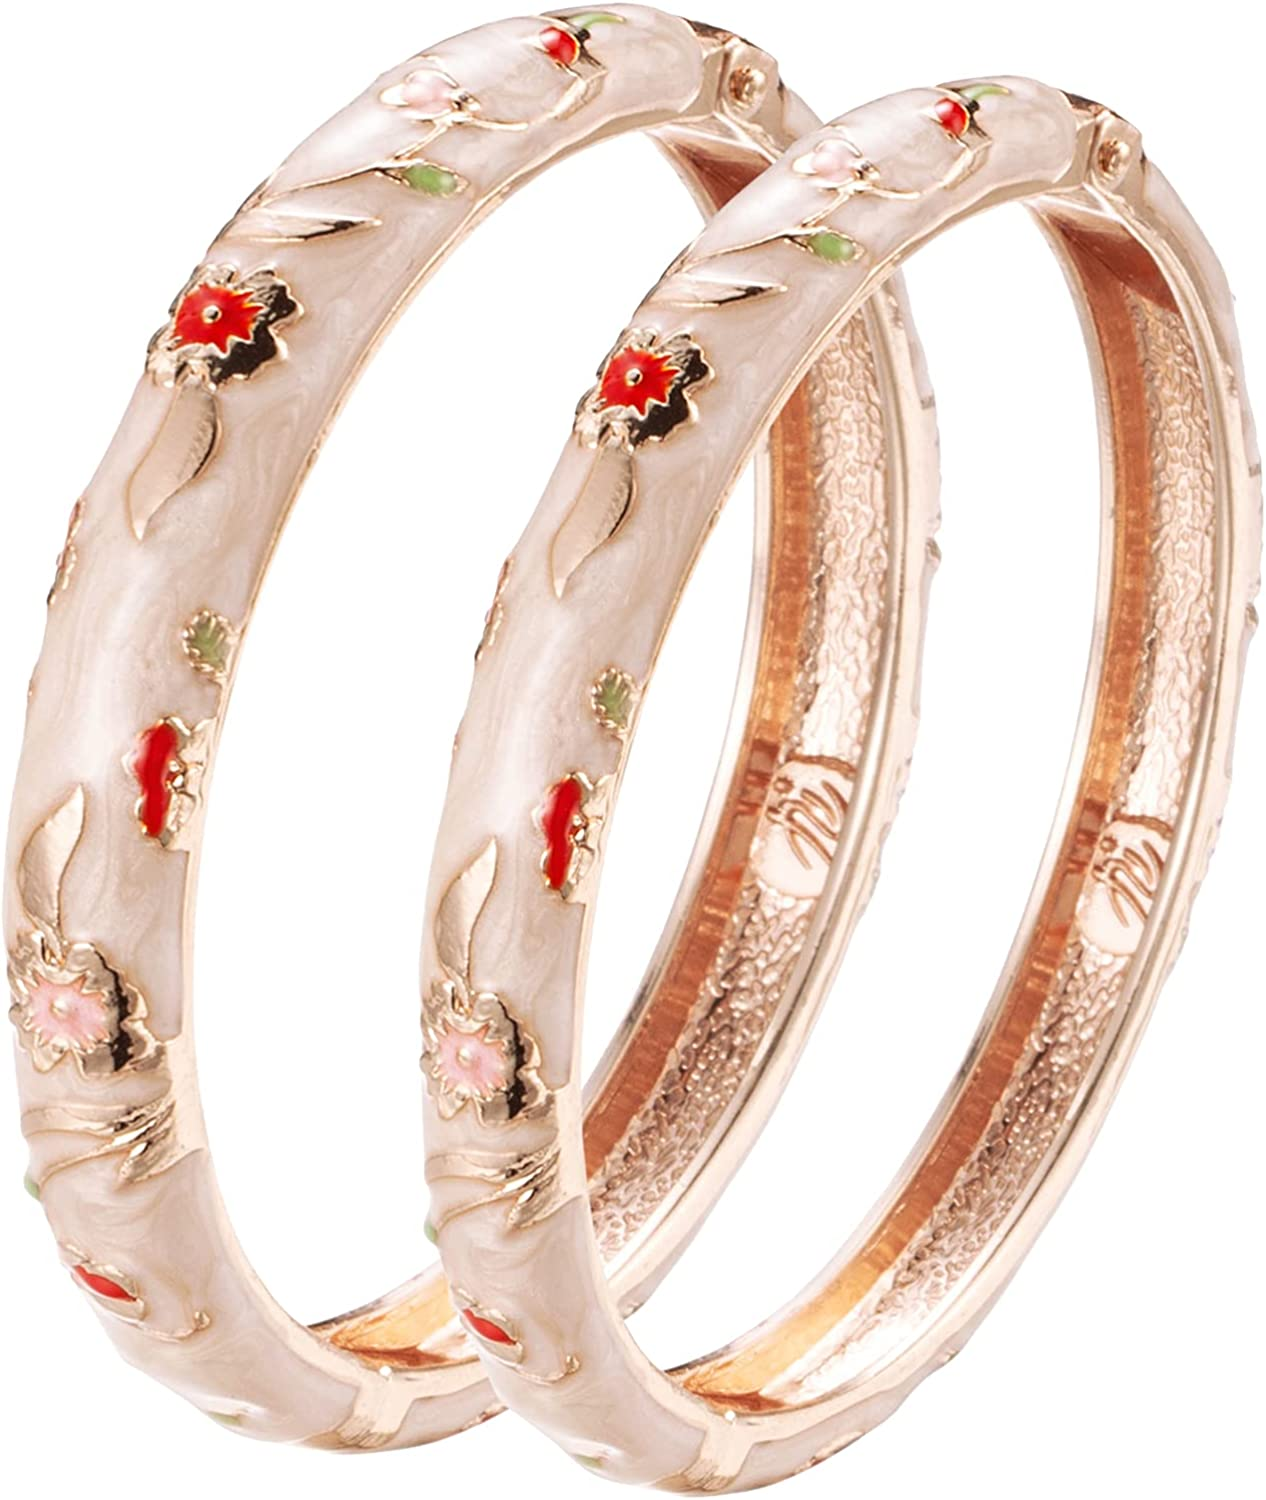 UJOY Designer Indian Style Cloisonne Bracelets, 2.4'' Openable Cuff Enameled Bangles Set Jewelry Gift for Women Packed in Box 55A111-55B31